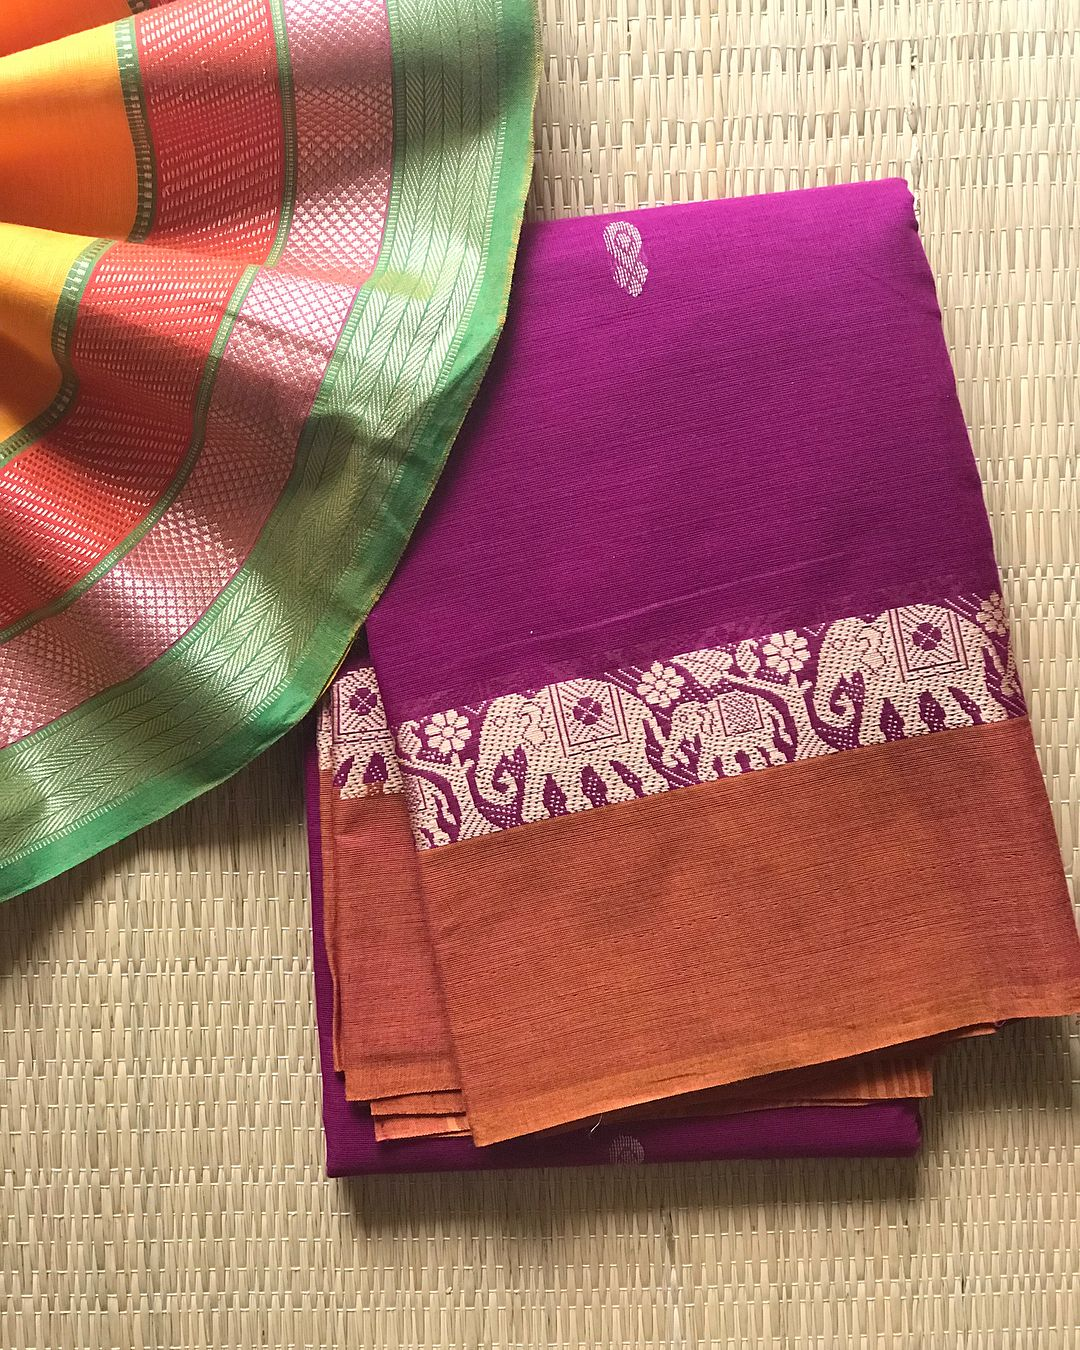 ee21773ee2 Chettinad Cotton//Beautiful shade of Purple with Elephant 🐘 Ramping  Detailed Border ! Clubbed with One meter Mangalgiri Cotton Blouse…